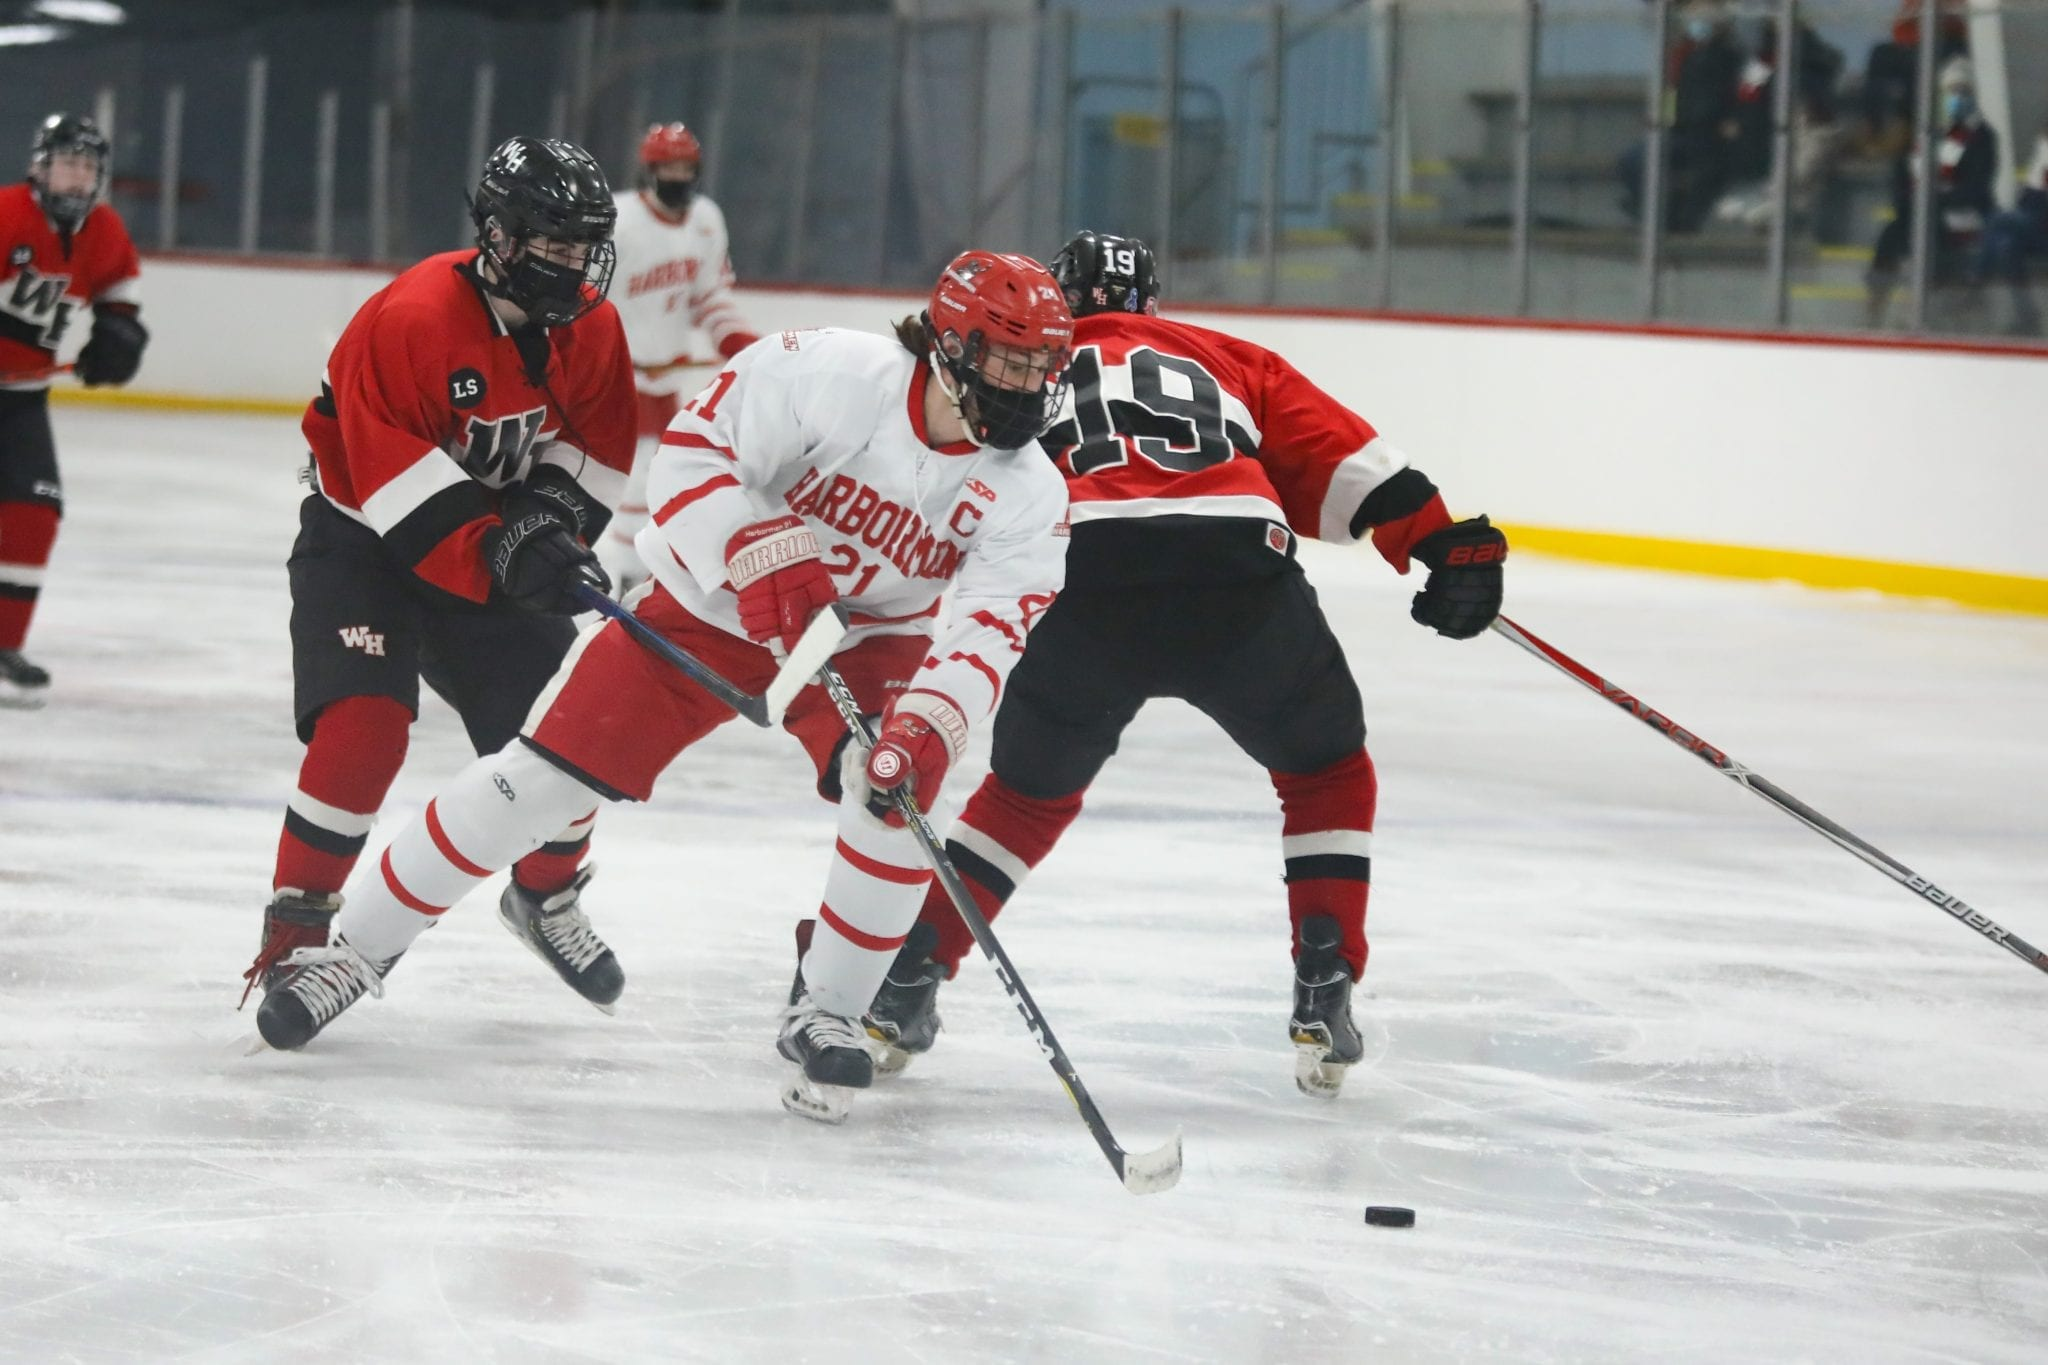 Senior captain Paul Forbes continues to show his leaderhship on the ice with his play.  Scoring less than a minute into the WH game set the tone for the next two games.